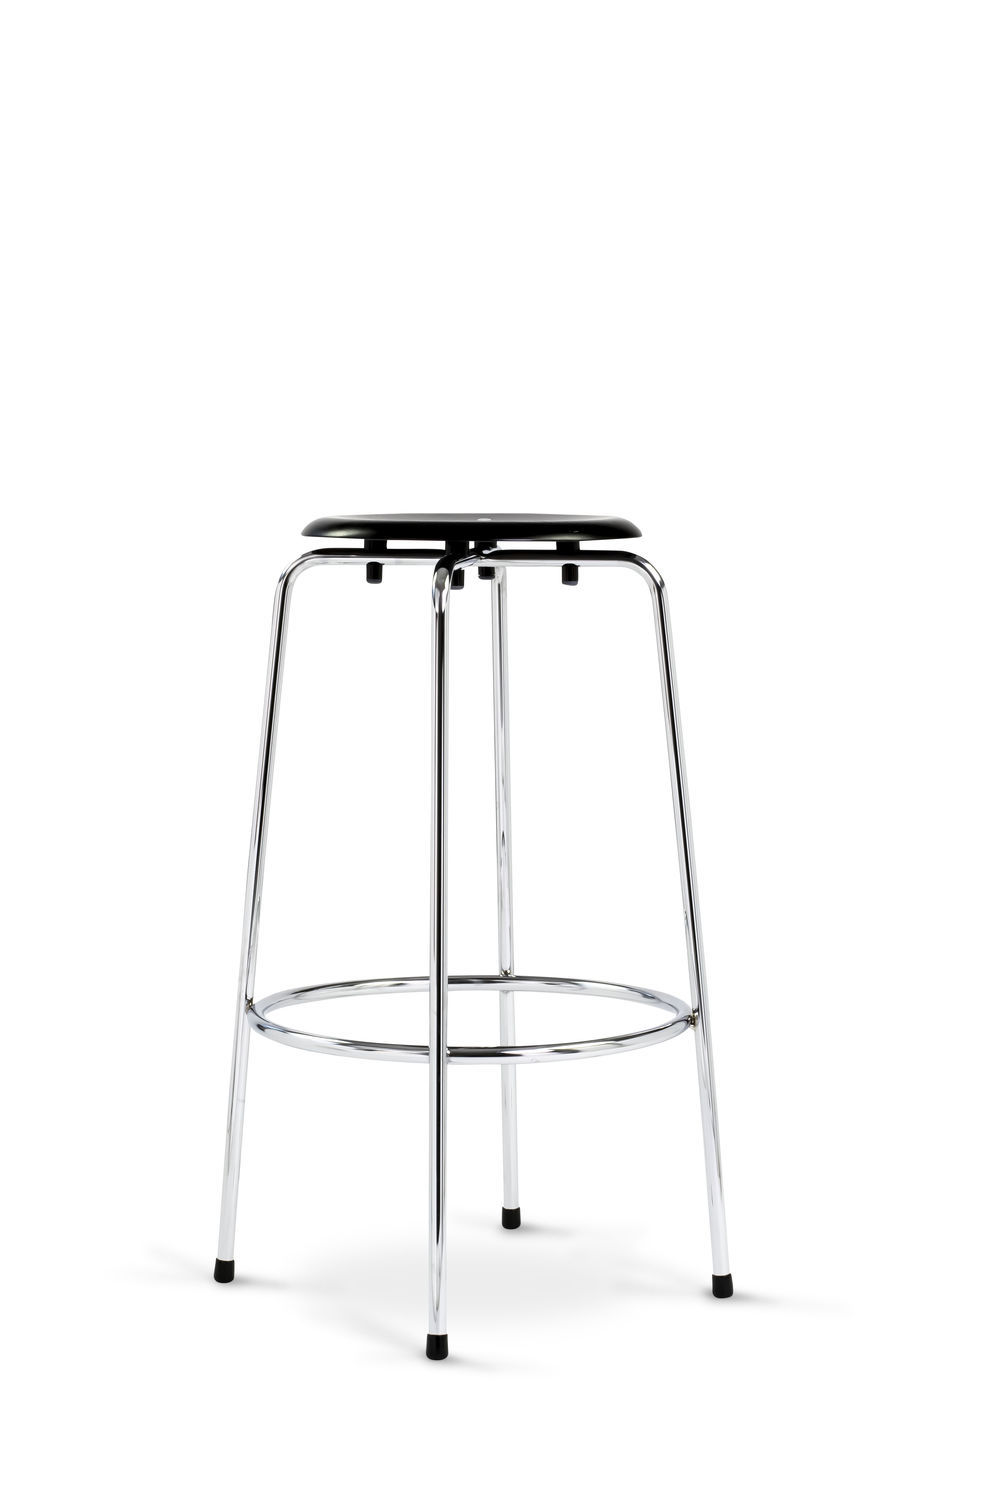 Tabourets Bar Empilables Tabouret De Bar Contemporain Professionnel Empilable Sb 38